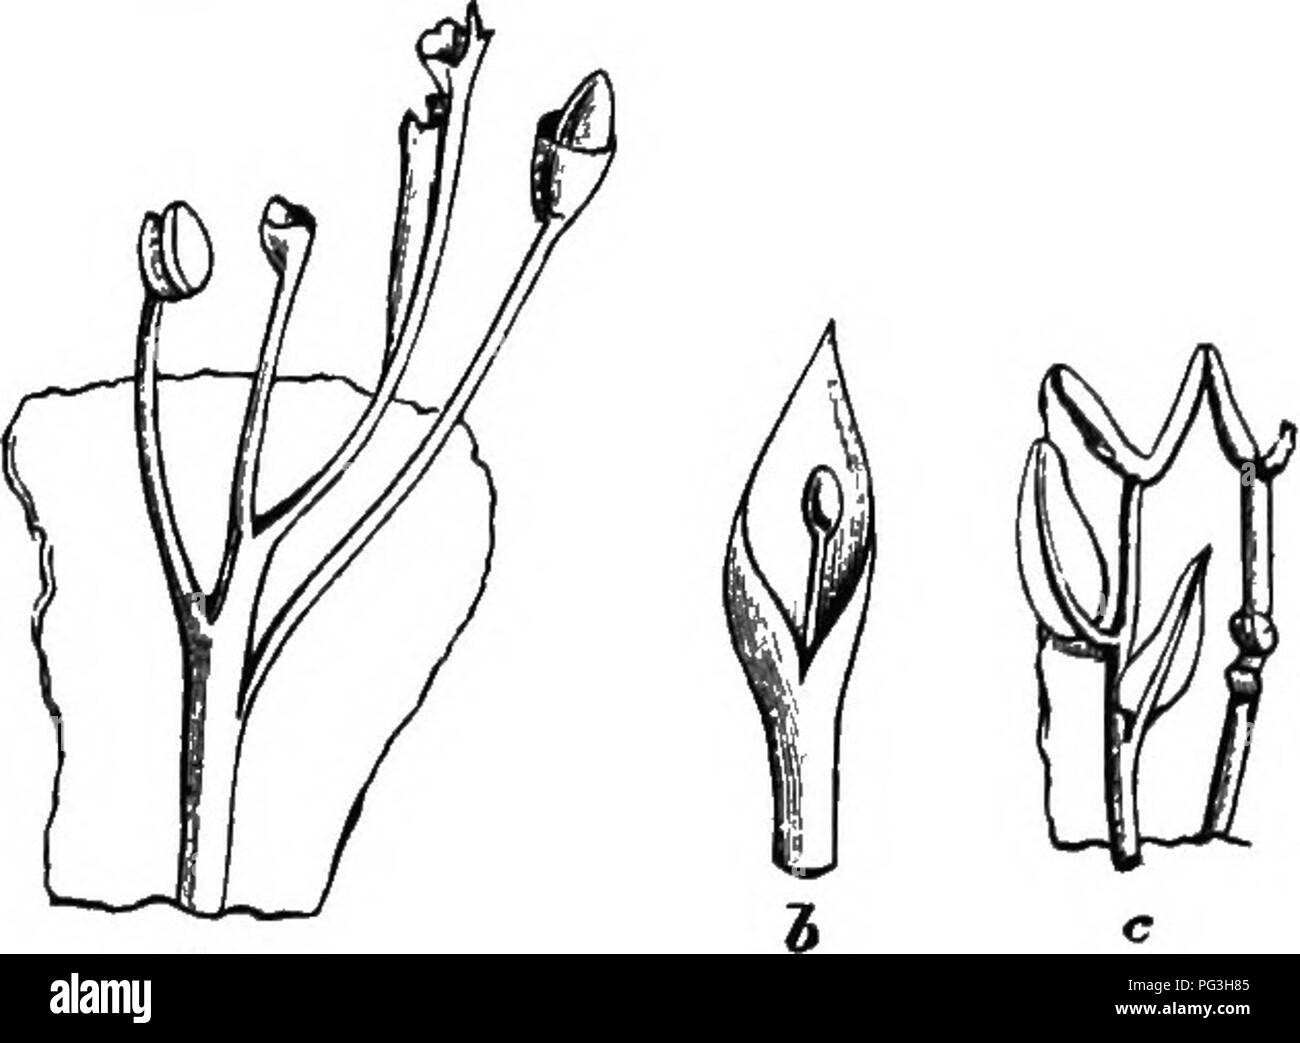 . The origin of floral structures : through insect and other agencies. Plants; Flowers; Flowers. PHYLLODY OF THE FLORAL WHORLS. 305 Pistils -whicli have reverted to a more or less foliaceons character bear ovules whicli often become foliaceons as well; and then a not nncommon proceduro is the develop- ment of a cup-like structure, probably composed of the two ovular coats, on an elongated stalk, with a rudimentary nucellus within, but more or less perfectly free from it; or it may not exist at all. The late Professor Henslow described a monstrous con- dition of Mignonette with figures of ovule - Stock Image